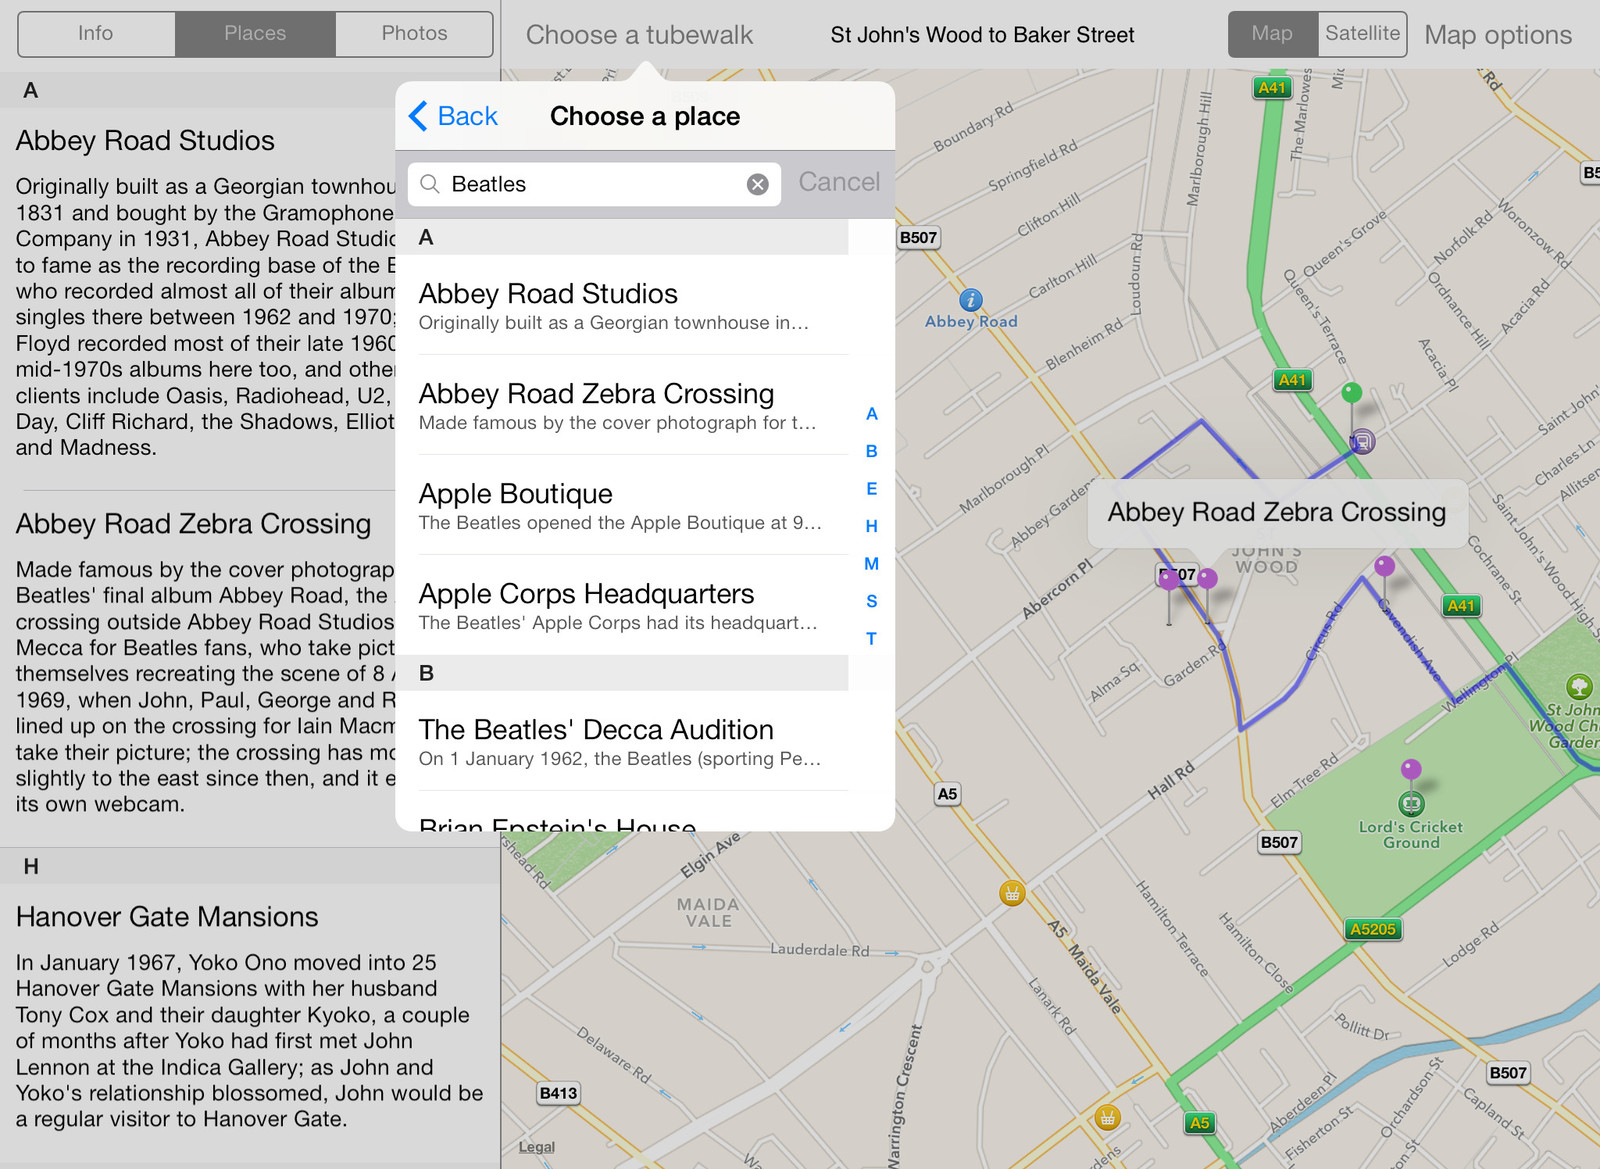 Searching for places of interest in the Tubewalker iPad application